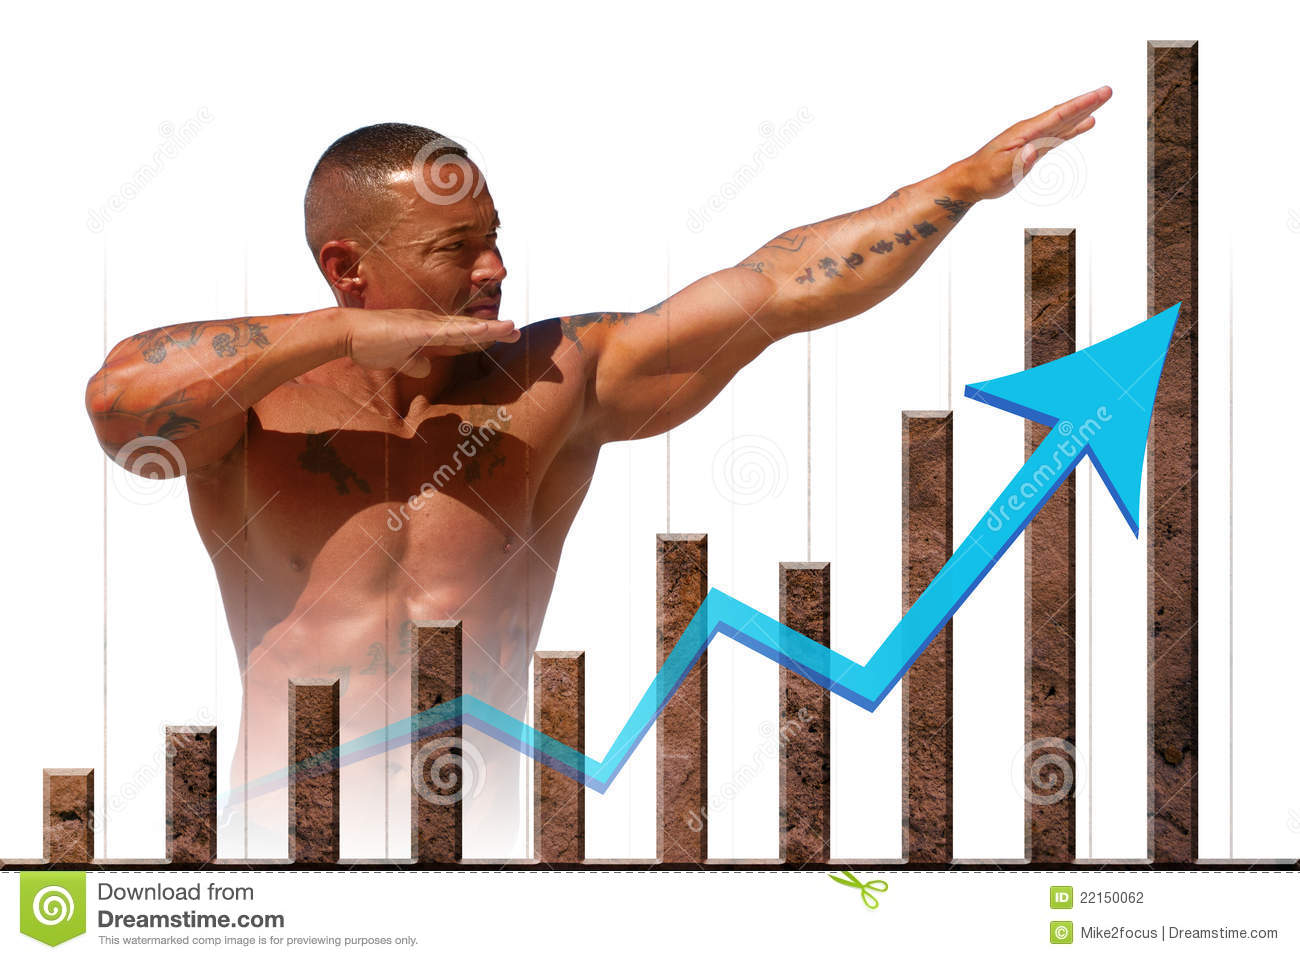 stock-market-economic-strength-22150062.